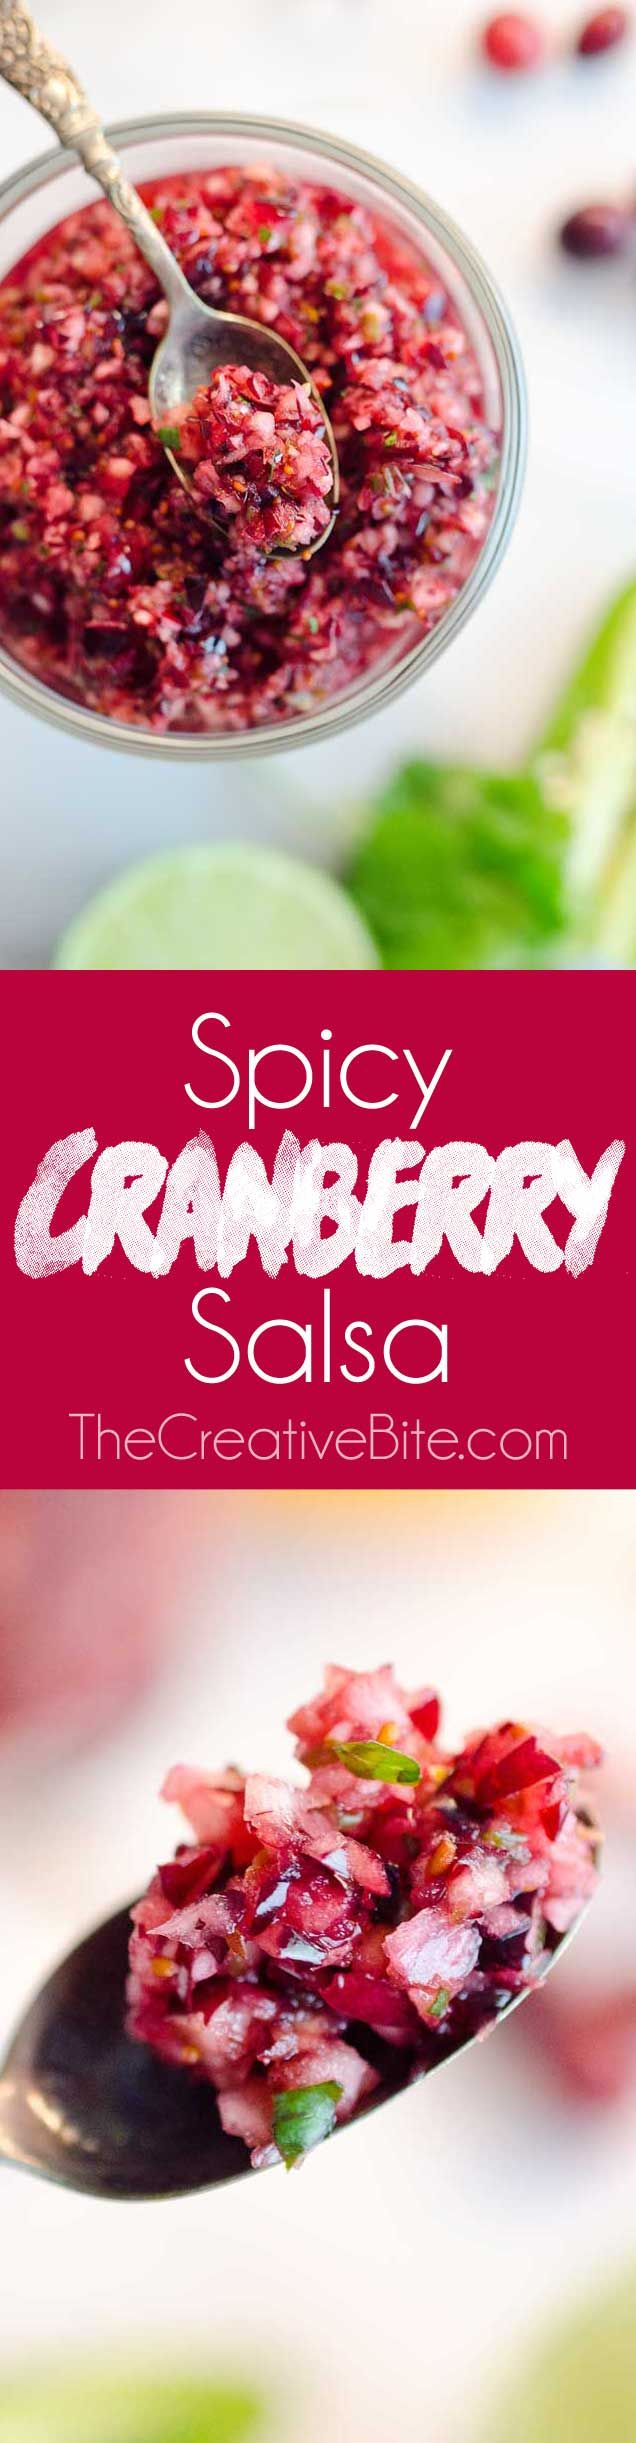 Spicy Cranberry Salsa is a fresh blend of cranberries, jalapeños, cilantro, honey and citrus for a healthy condiment perfect with turkey or spread on cream cheese and served with crackers for an easy appetizer!